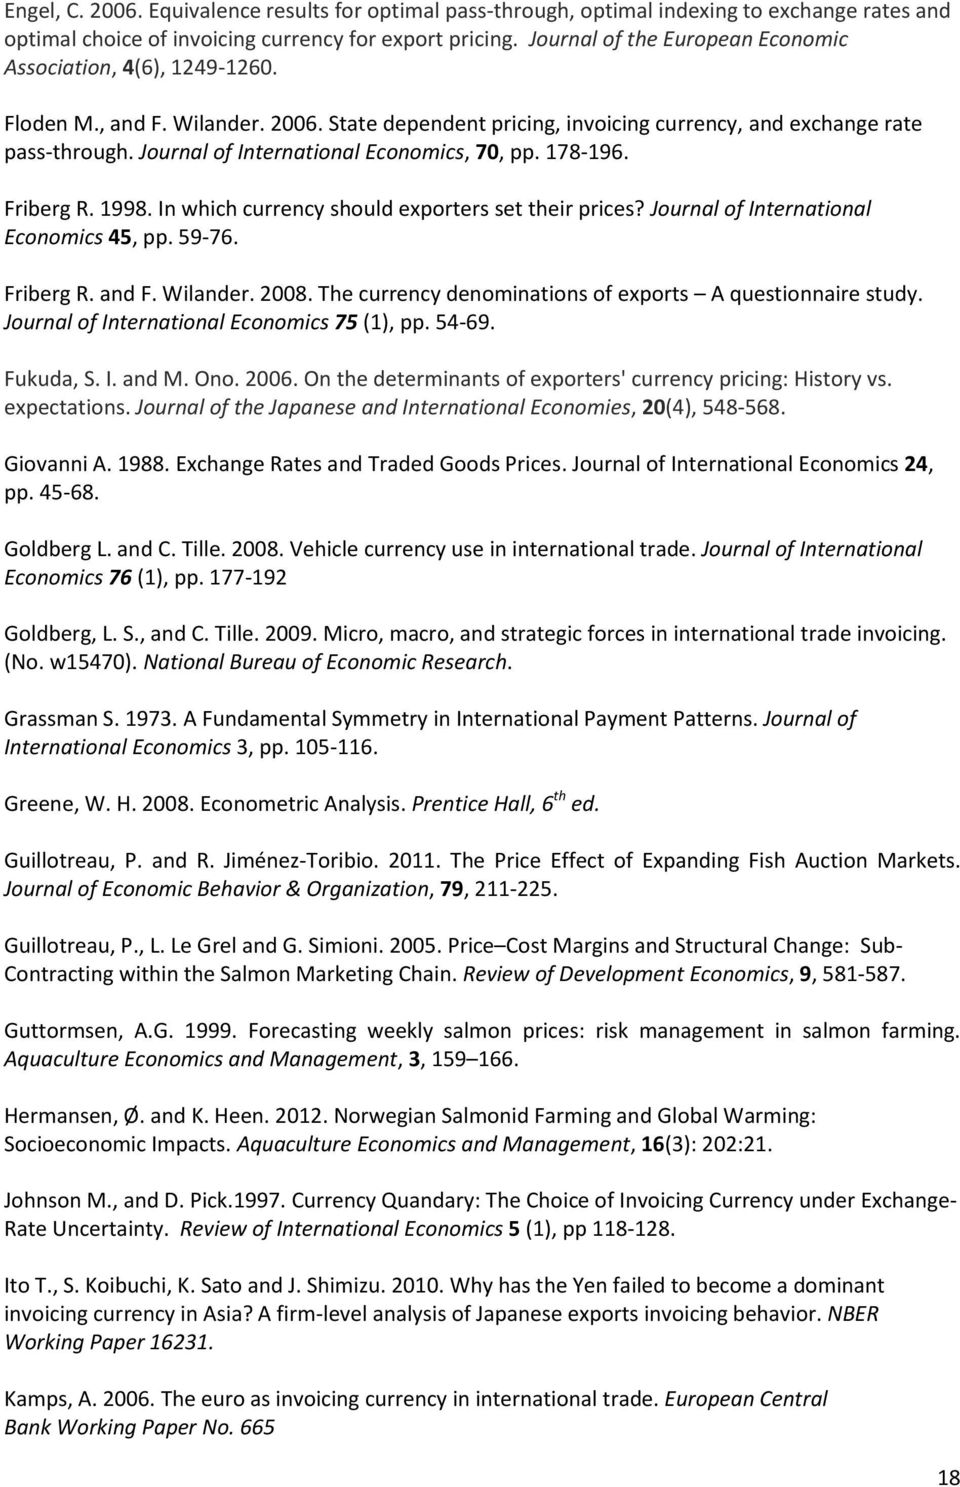 Journal of International Economics, 70, pp. 178-196. Friberg R. 1998. In which currency should exporters set their prices? Journal of International Economics 45, pp. 59-76. Friberg R. and F. Wilander.